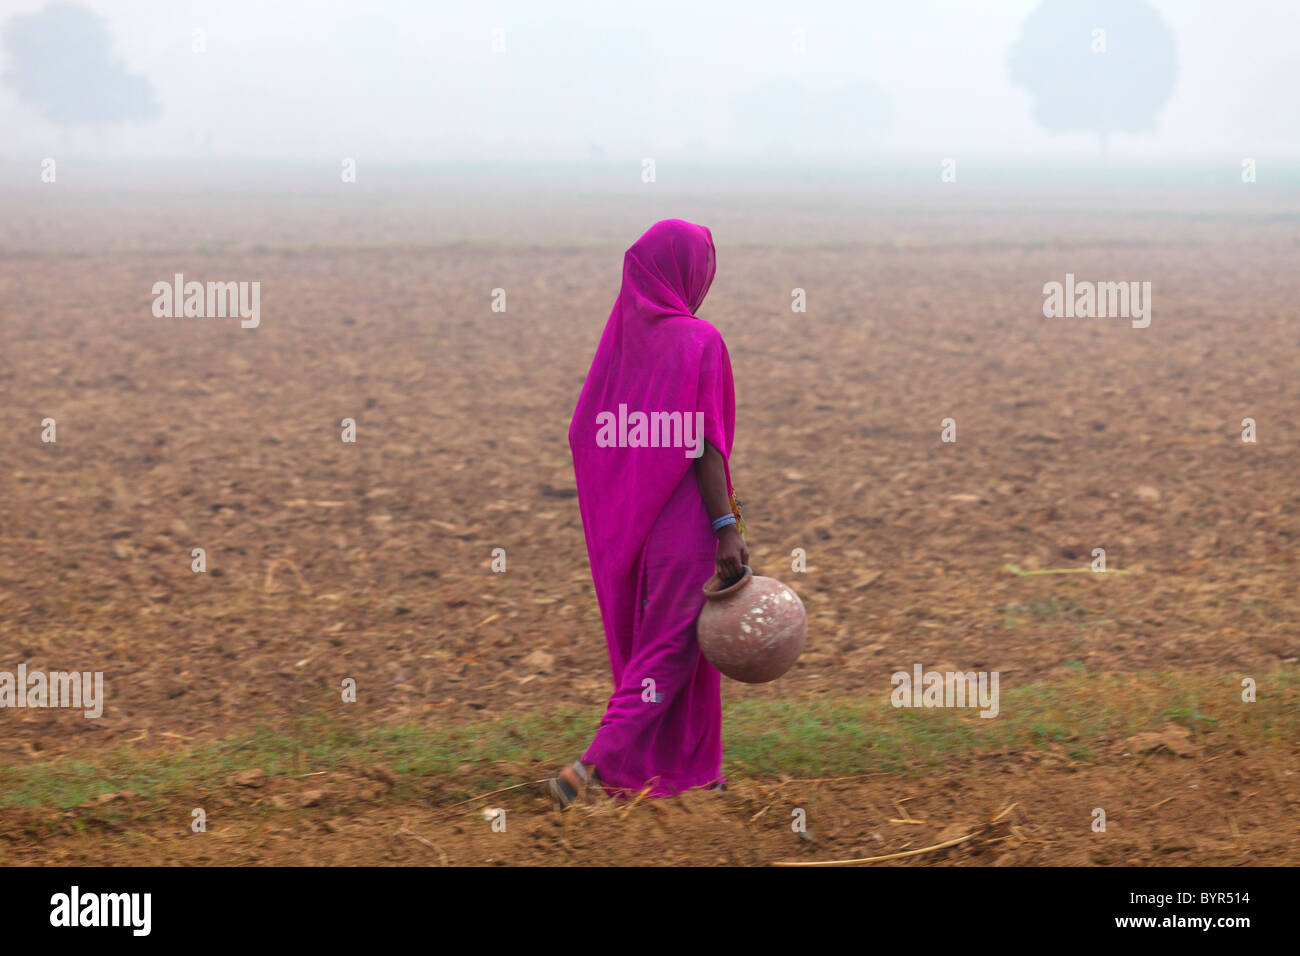 india, Uttar Pradesh, woman walking through misty field carrying water pot - Stock Image